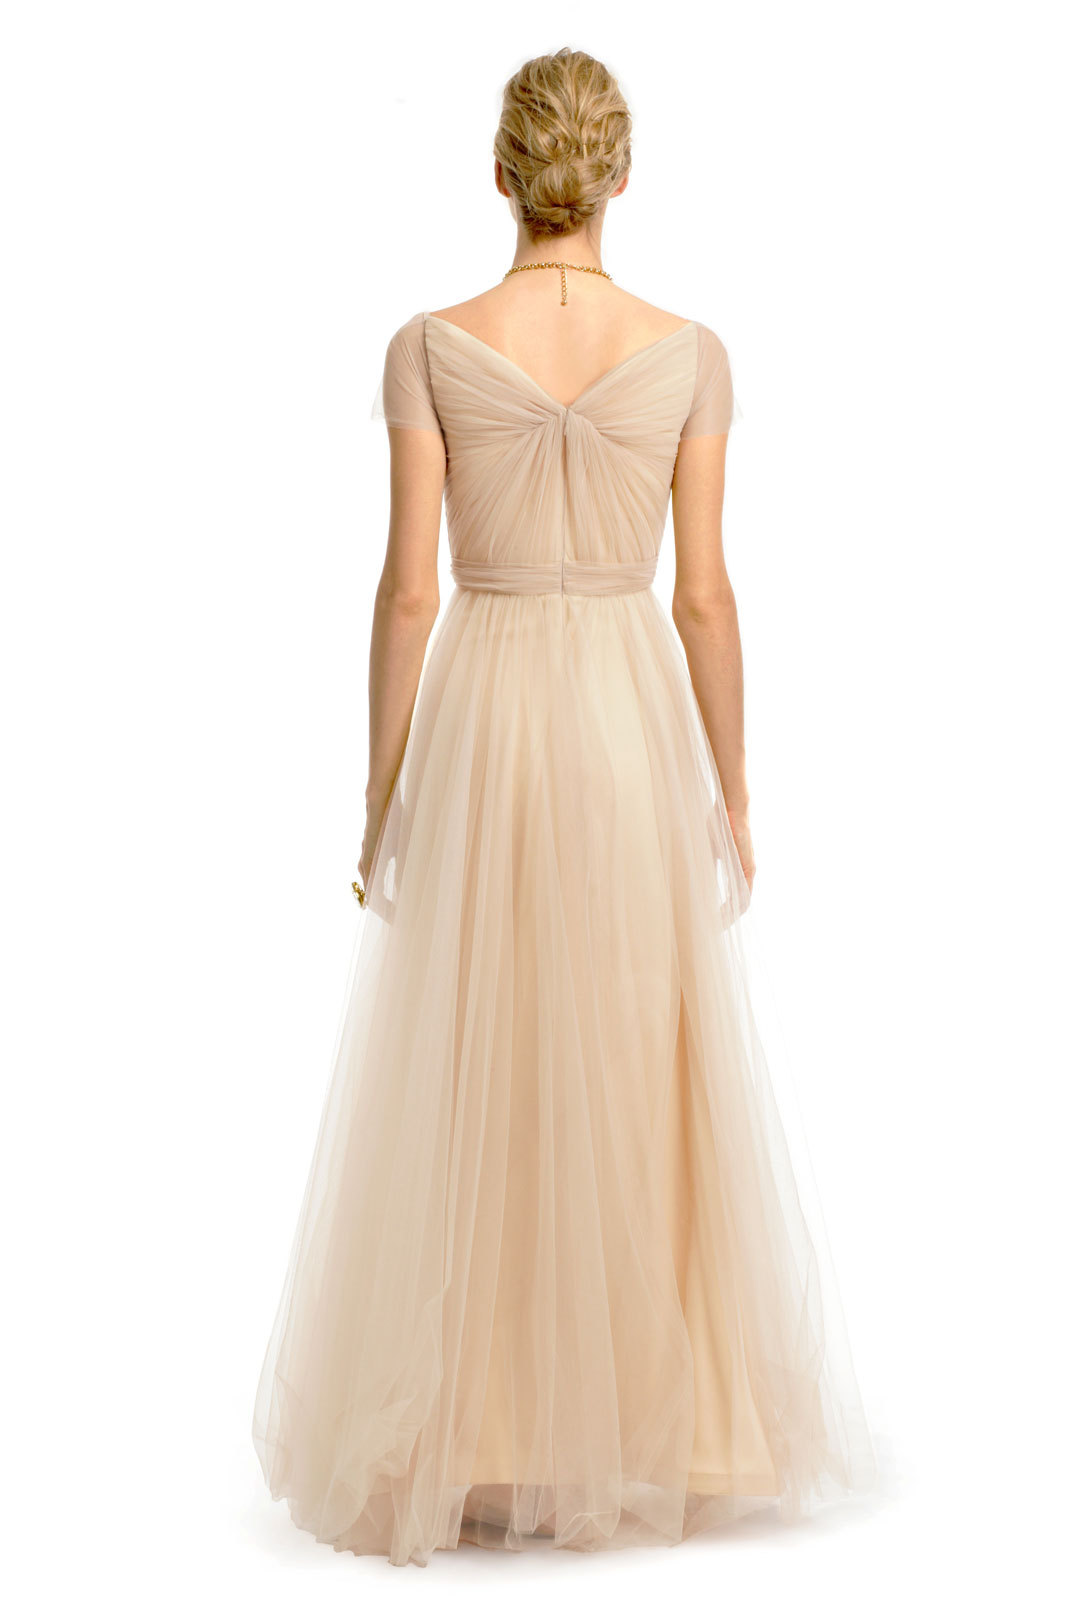 dress_reem_acra_florence_gown_over